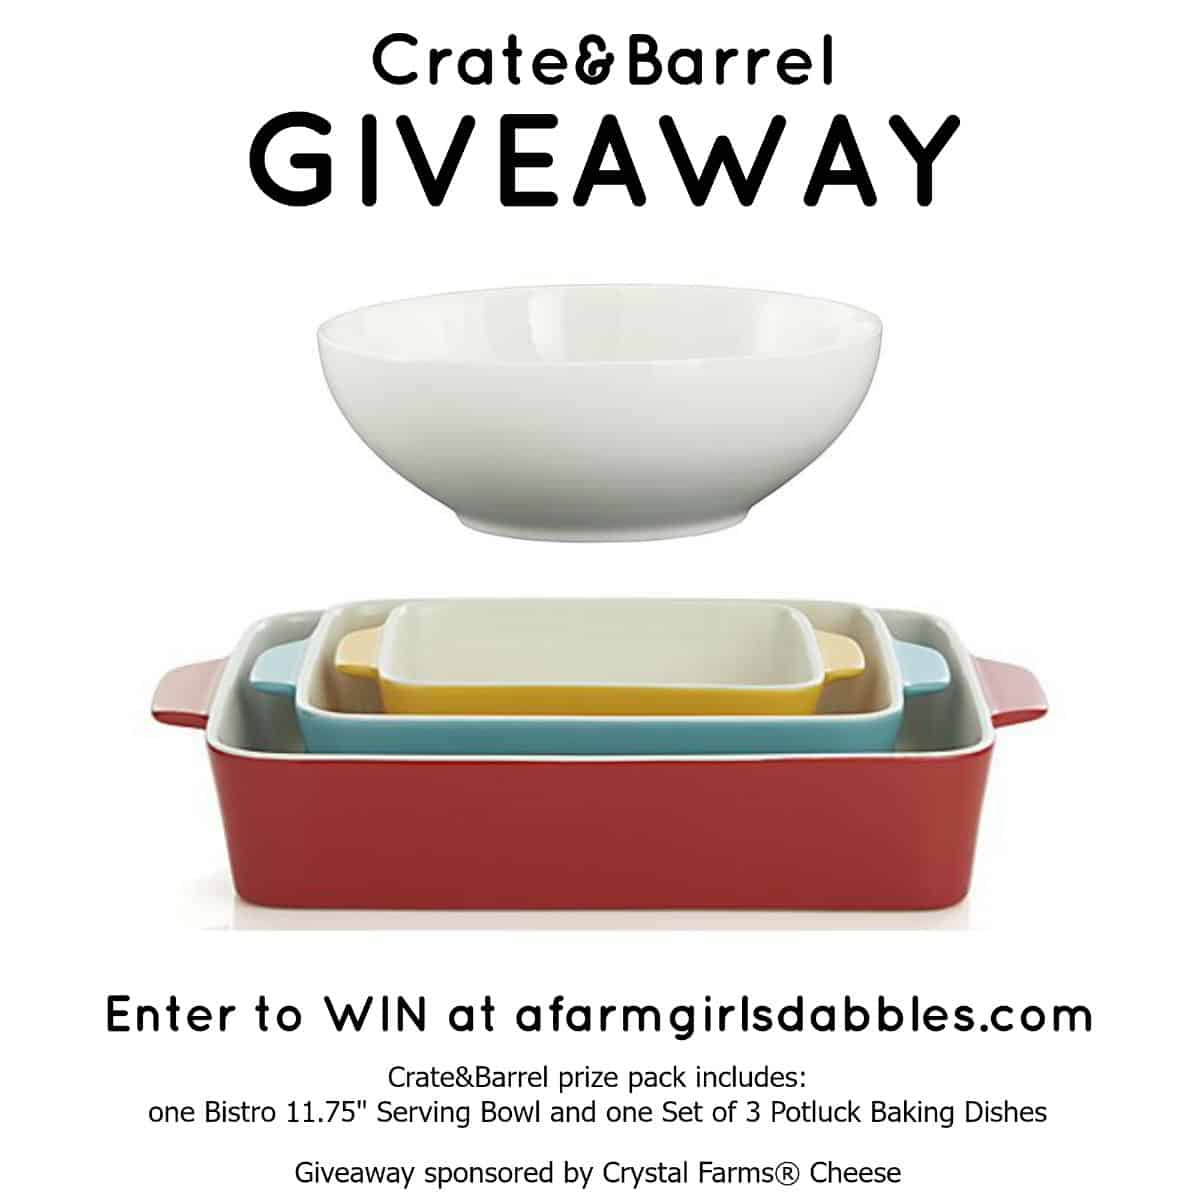 Crate&Barrel GIVEAWAY - enter to WIN at afarmgirlsdabbles.com